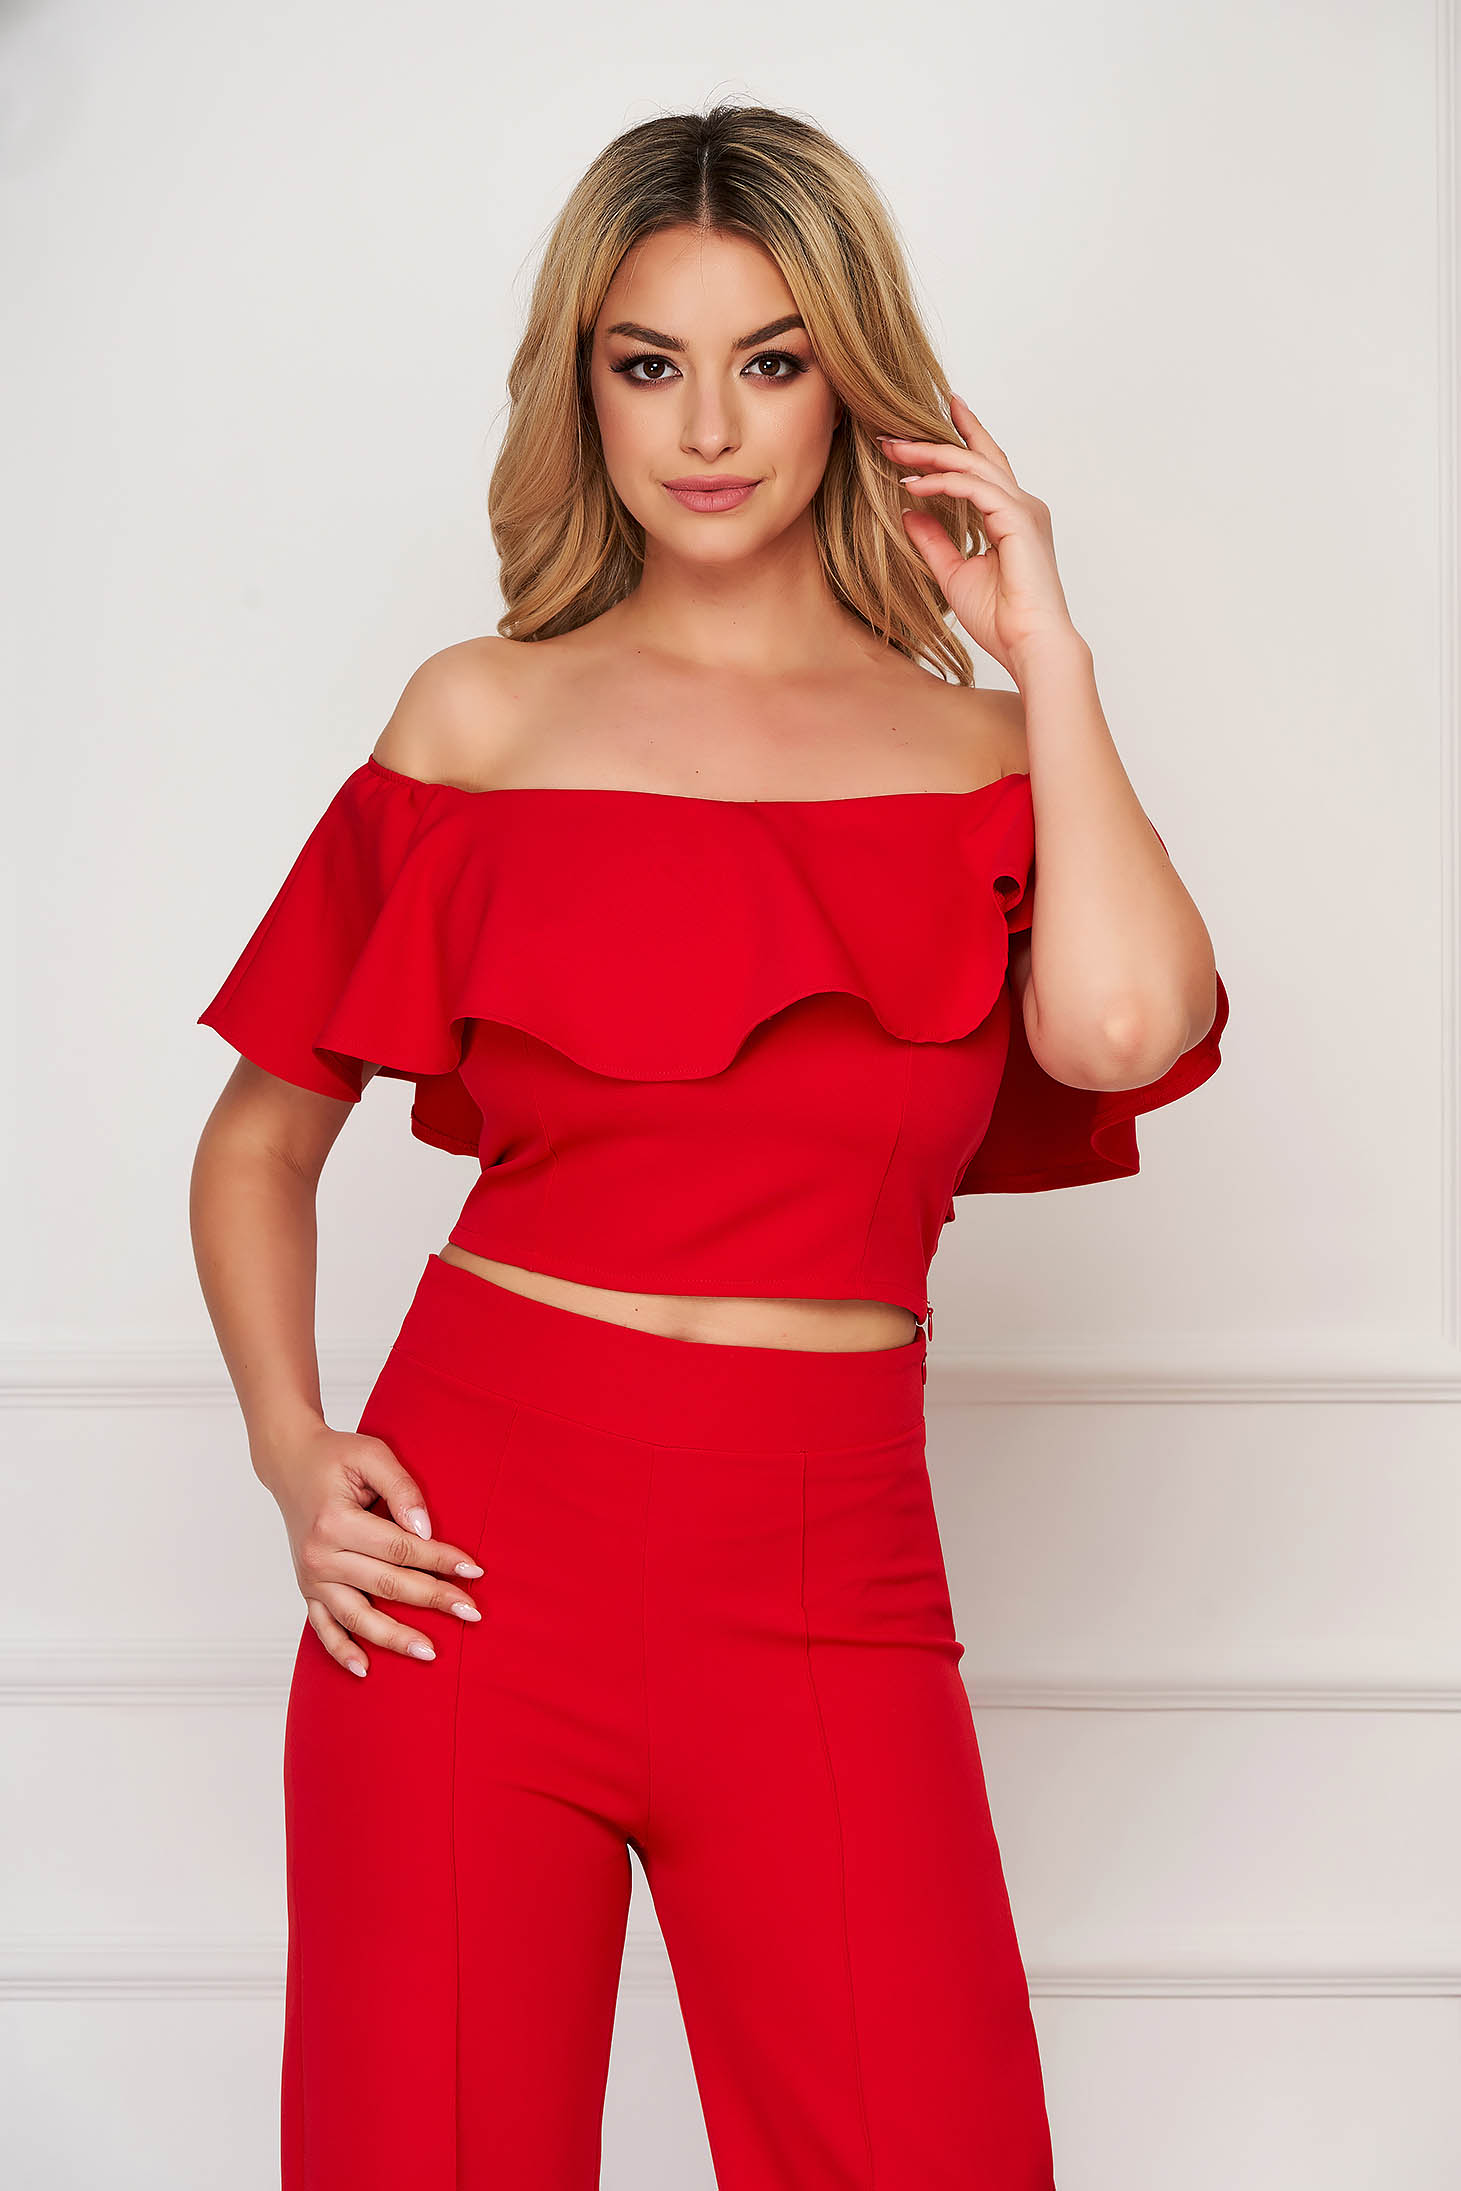 StarShinerS red top shirt tented cloth short cut from elastic fabric naked shoulders